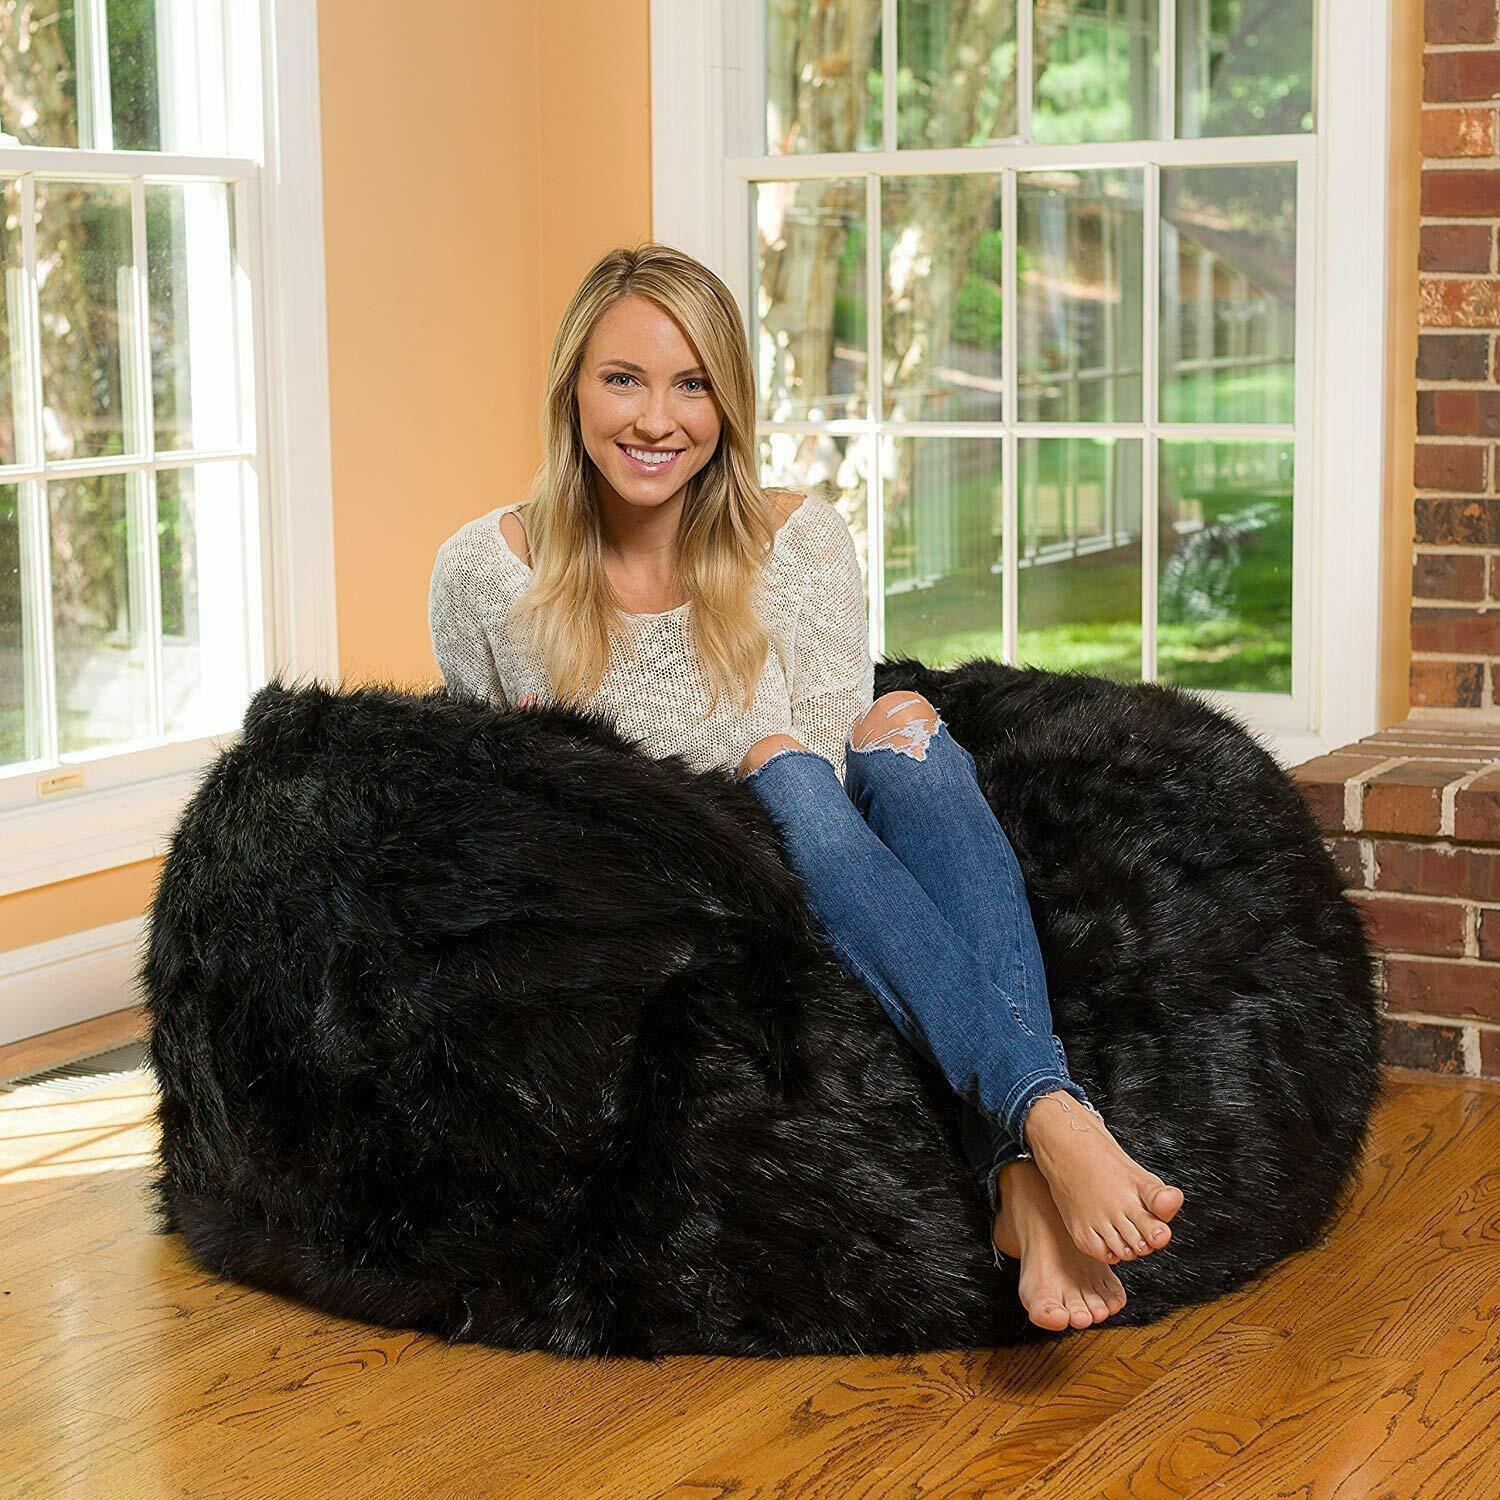 Leather Fur U and I Design Bean Bag and Cover, XXXL/9mm (Black) Free Shipping image 5